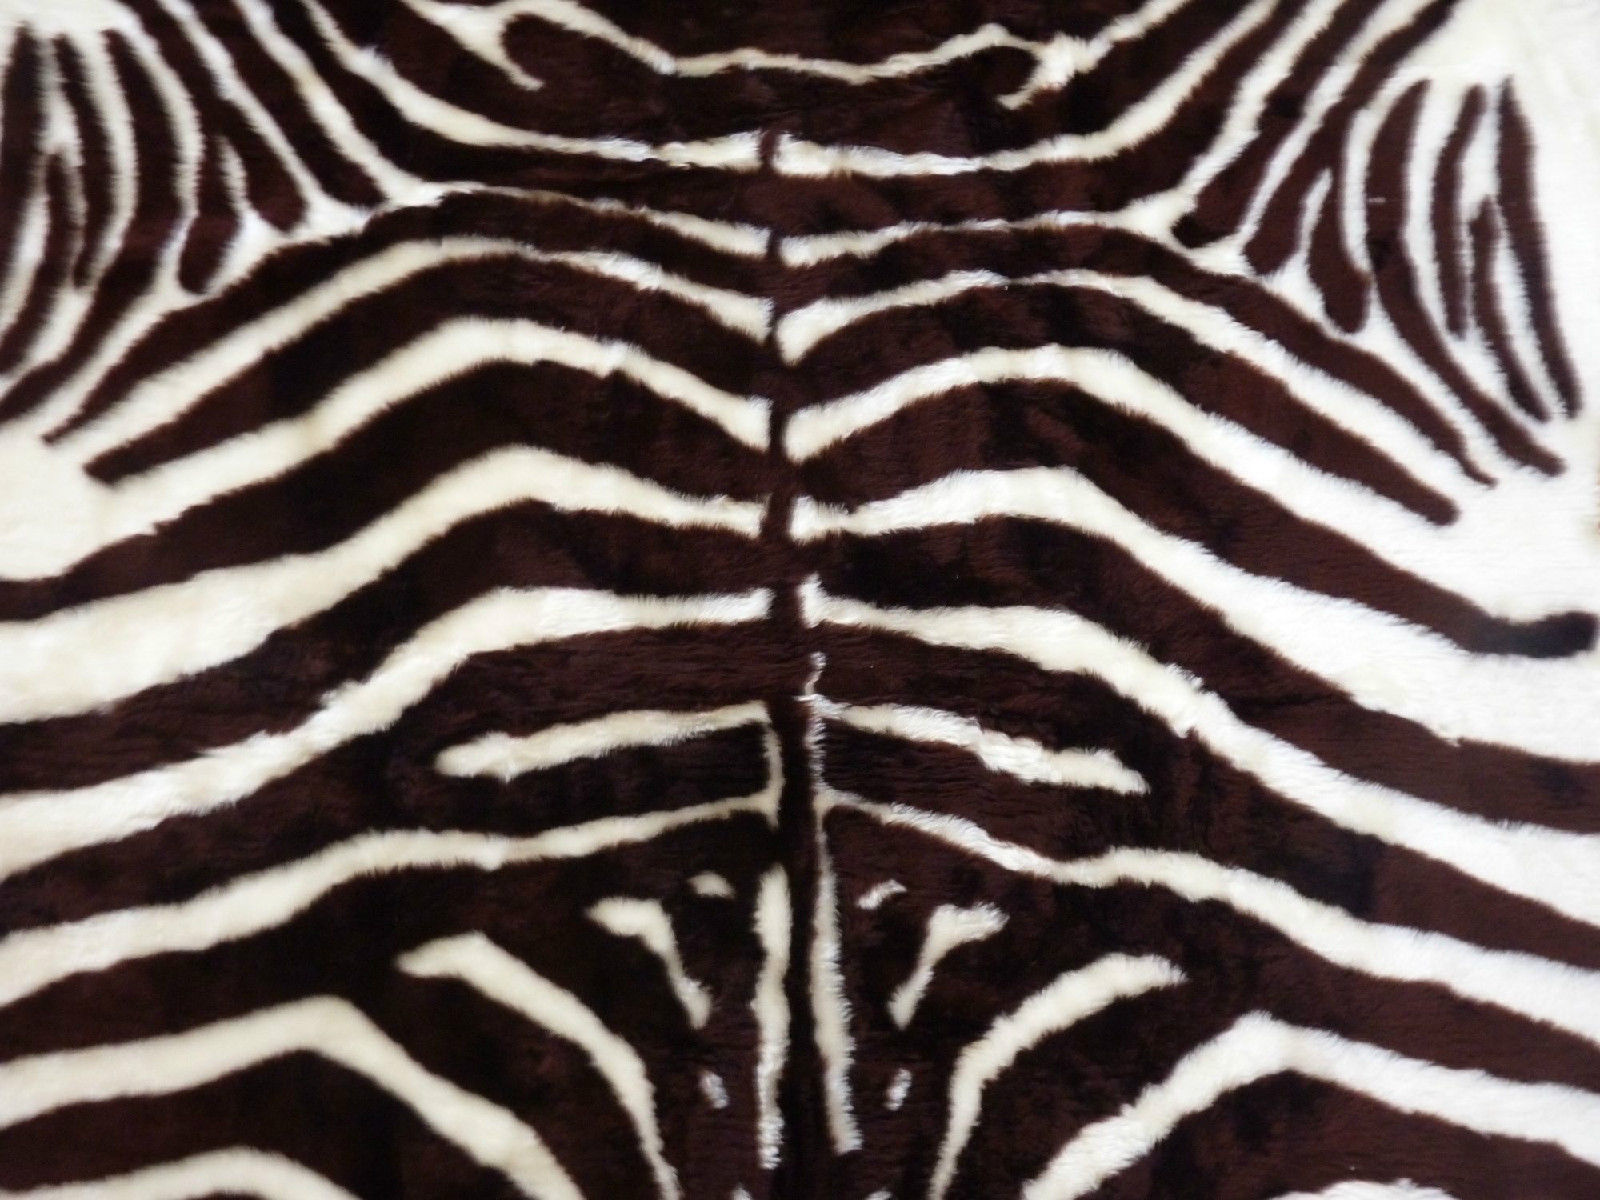 Faux Fur Zebra Hide Rug From France 3 X 5 Brown White